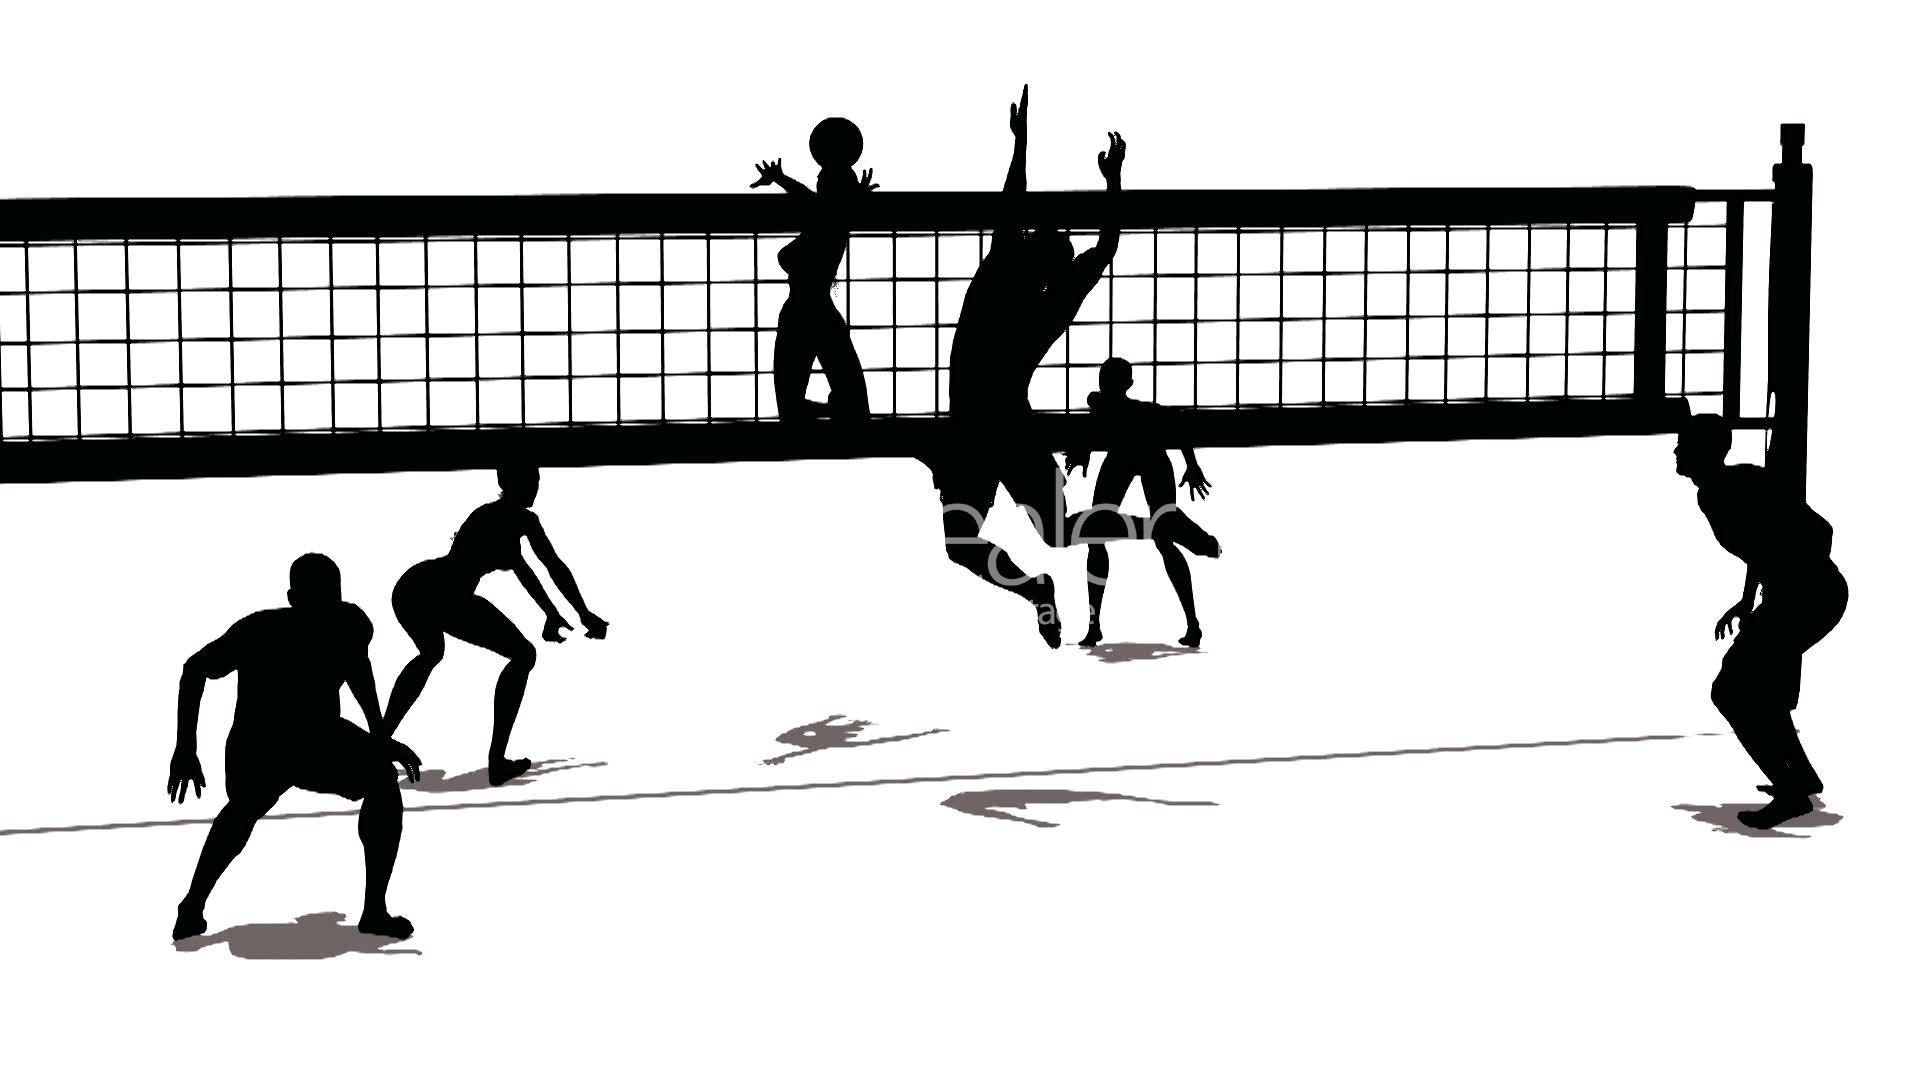 Clipart volleyball kostenlos picture black and white Image Gallery of Volleyball Team Silhouette picture black and white